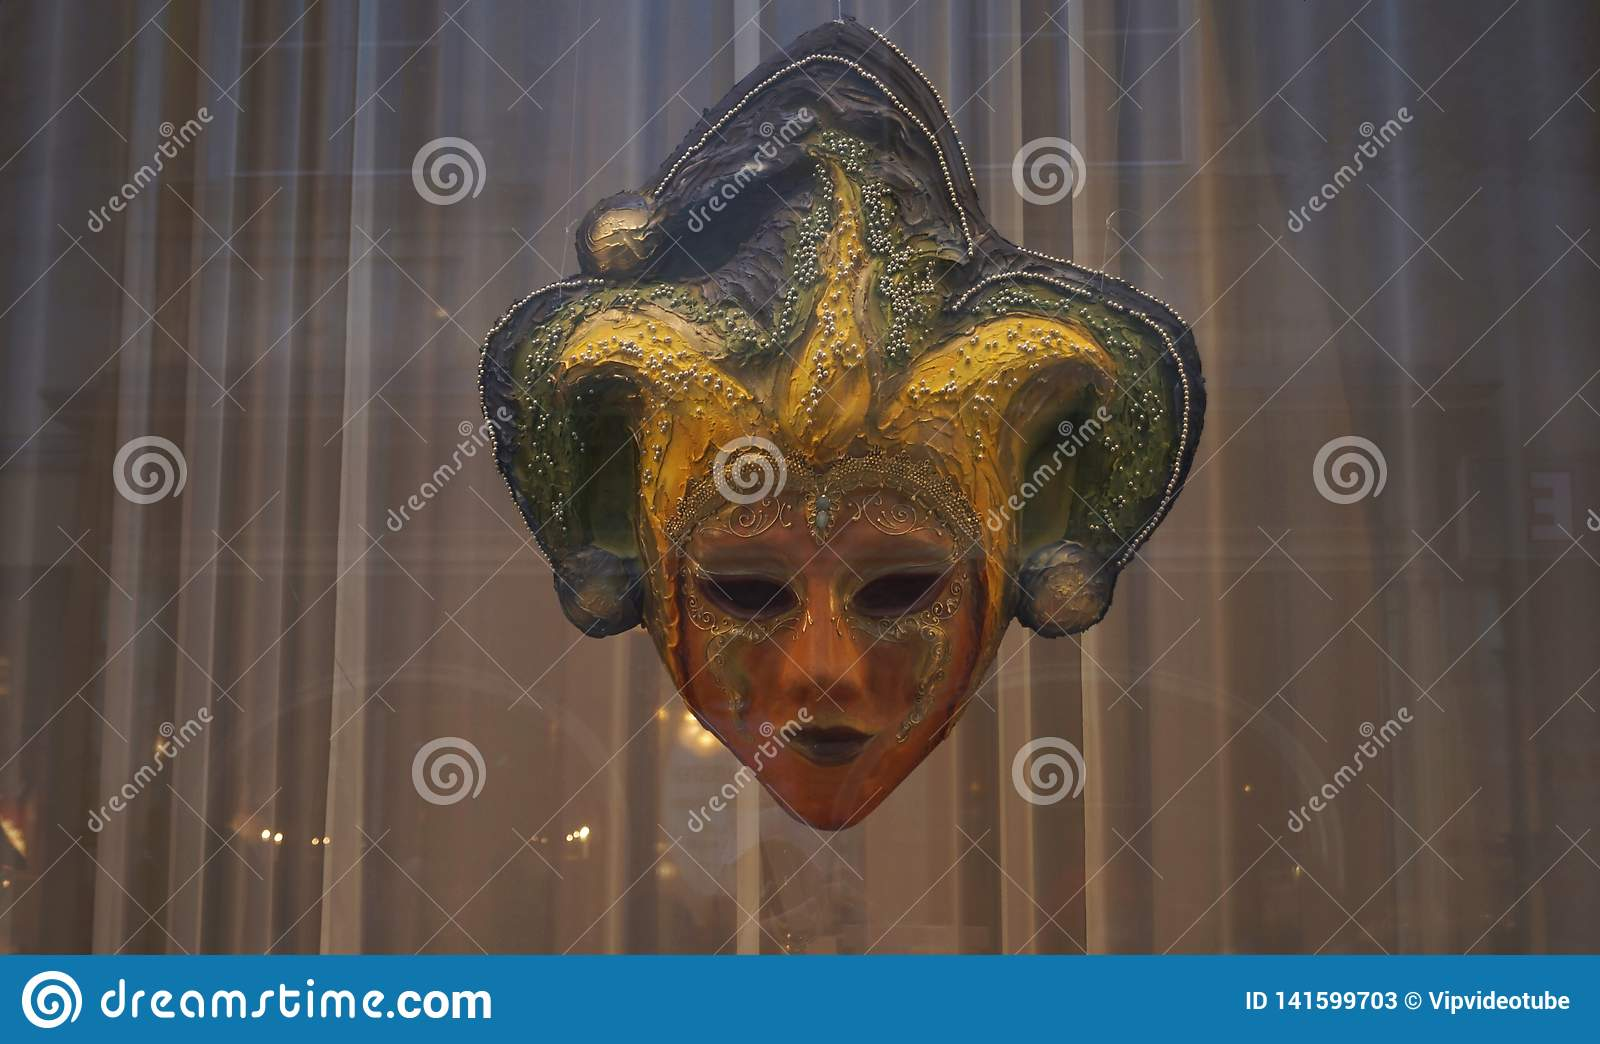 Mask of jester behind the glass